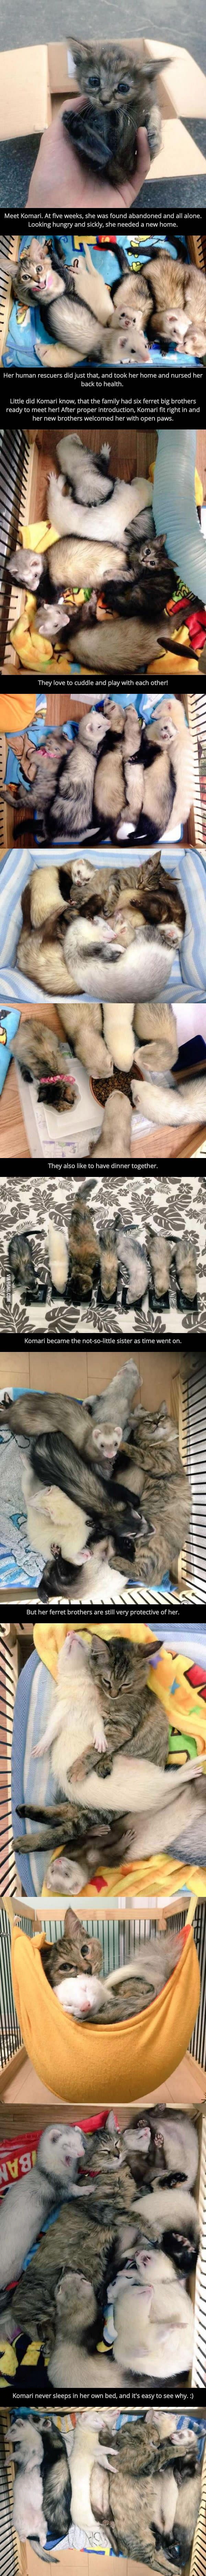 Cute five month old kitten adopted and taken in by adorable baby ferret family #kittens